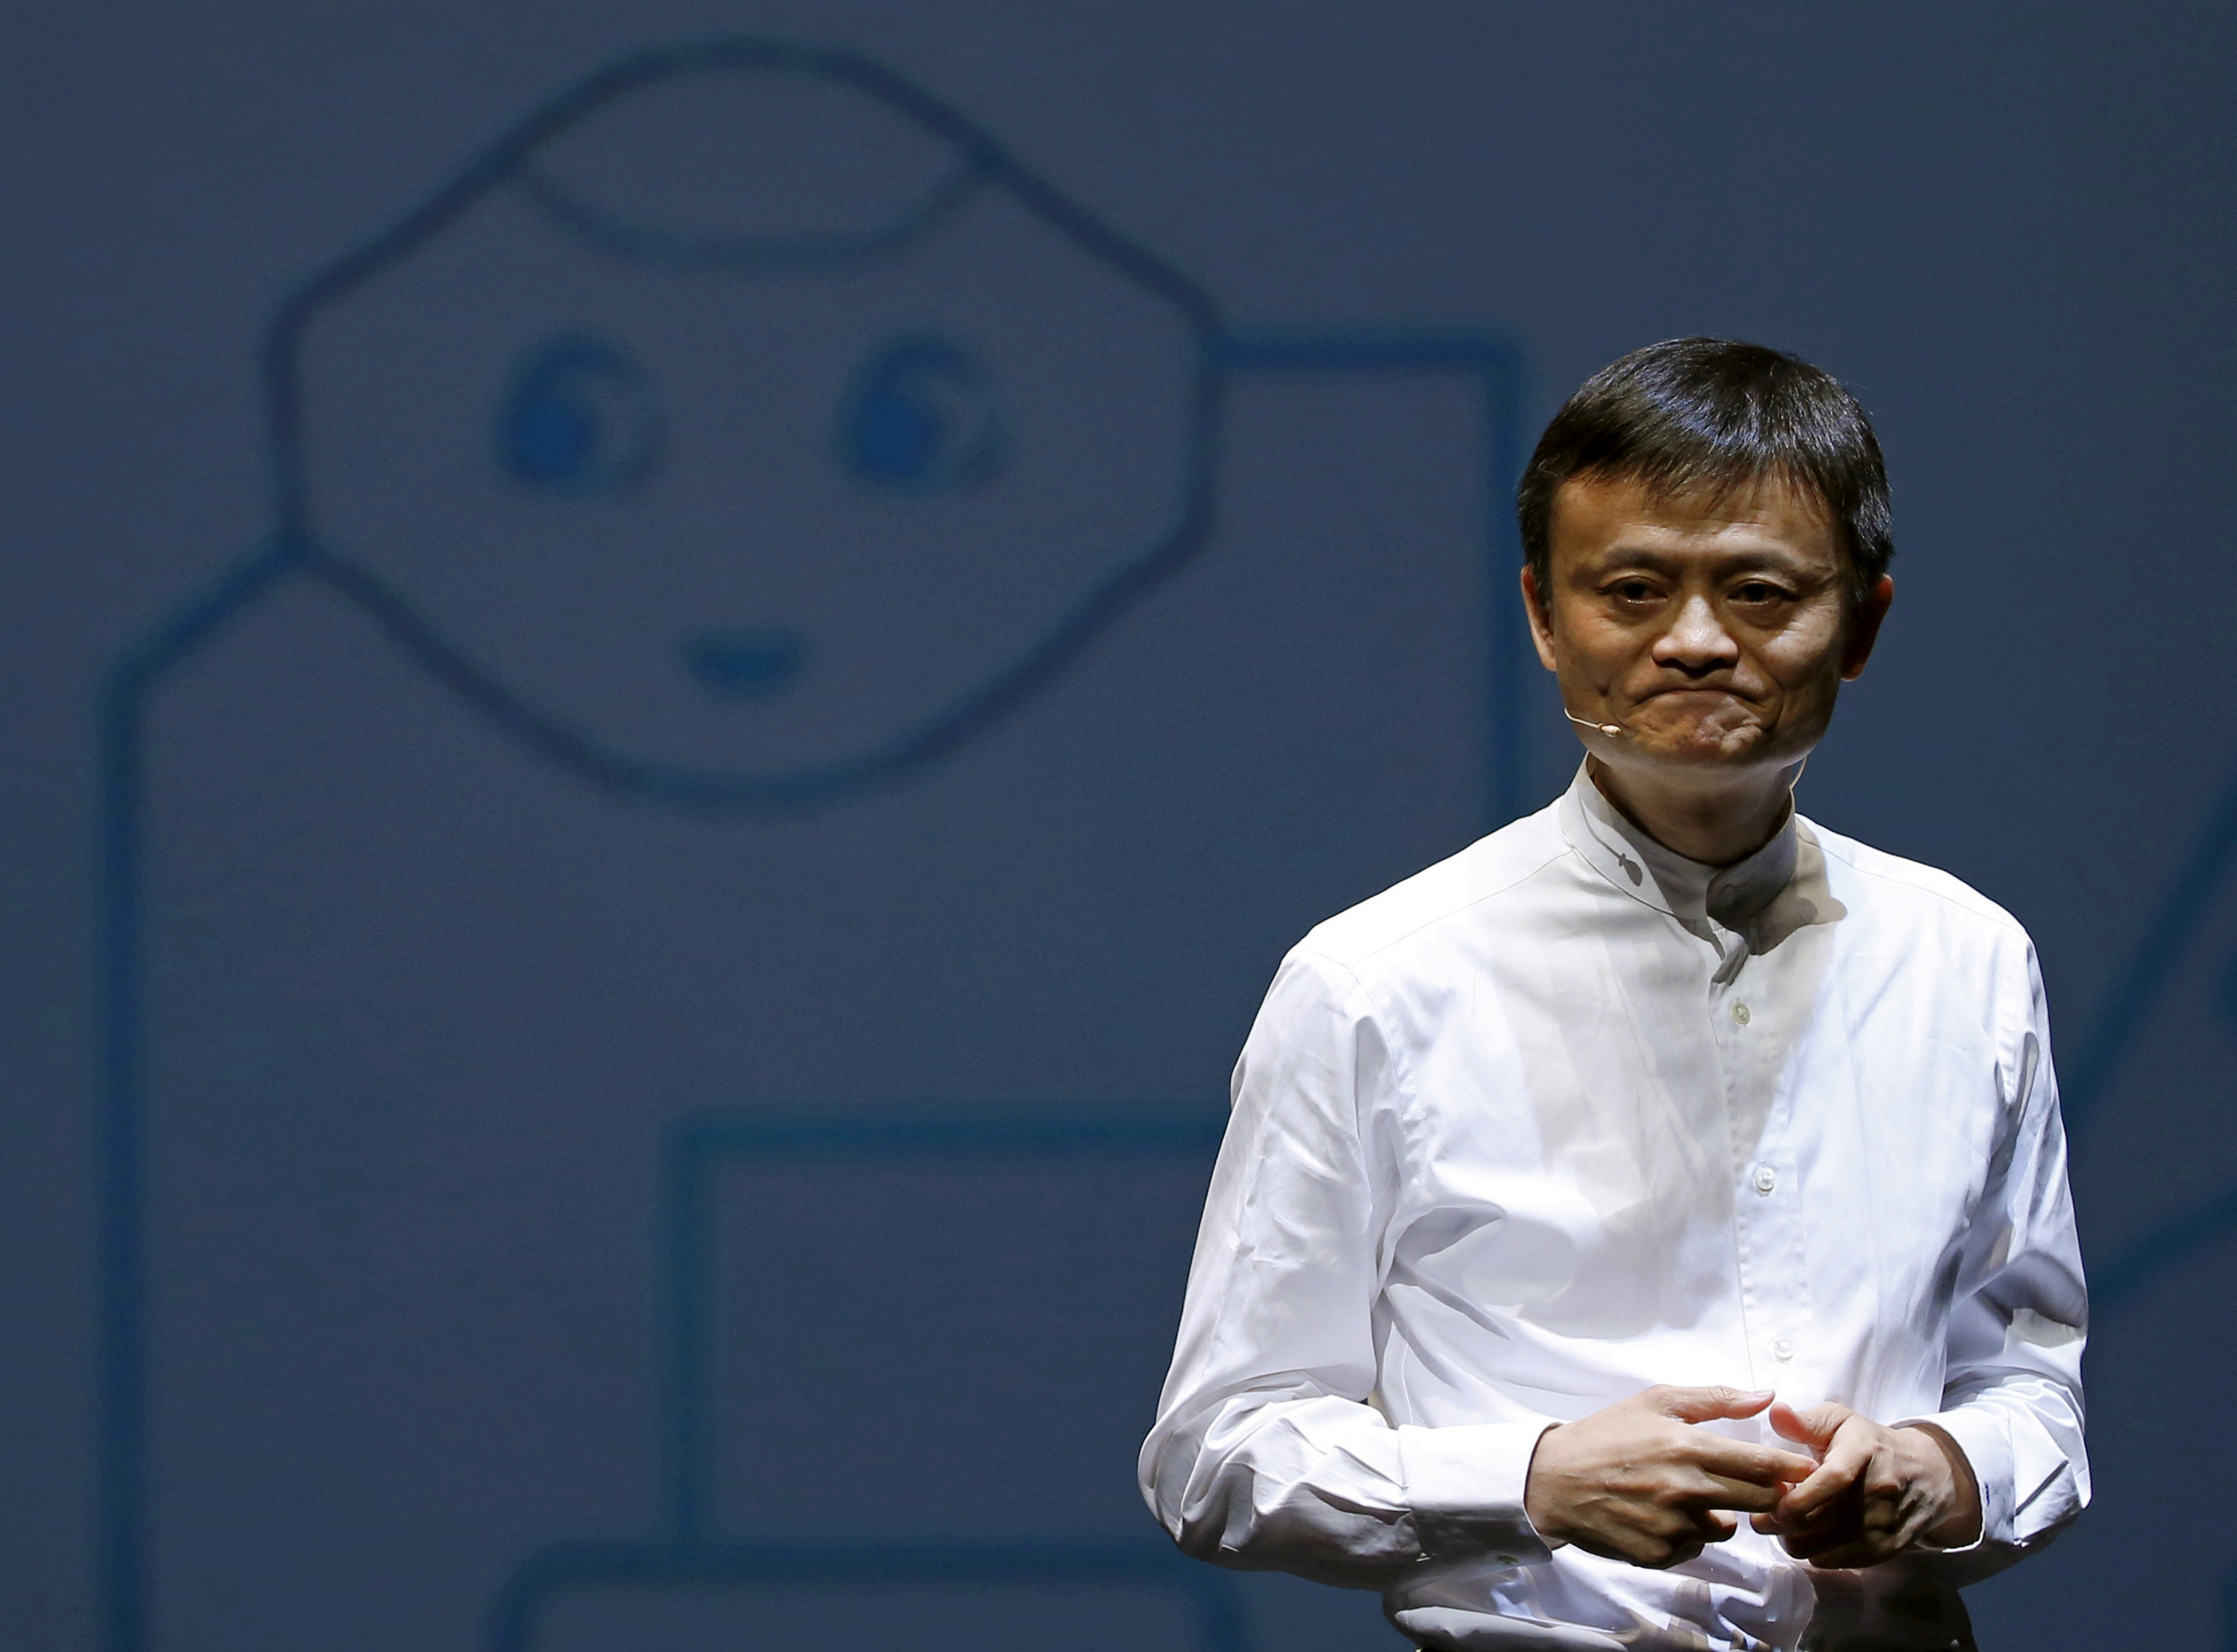 Jack Ma, founder and executive chairman of China's Alibaba Group, speaks in front of a picture of SoftBank's human-like robot named 'pepper' during a news conference in Chiba, Japan, June 18, 2015. REUTERS/Yuya Shino/File Photo